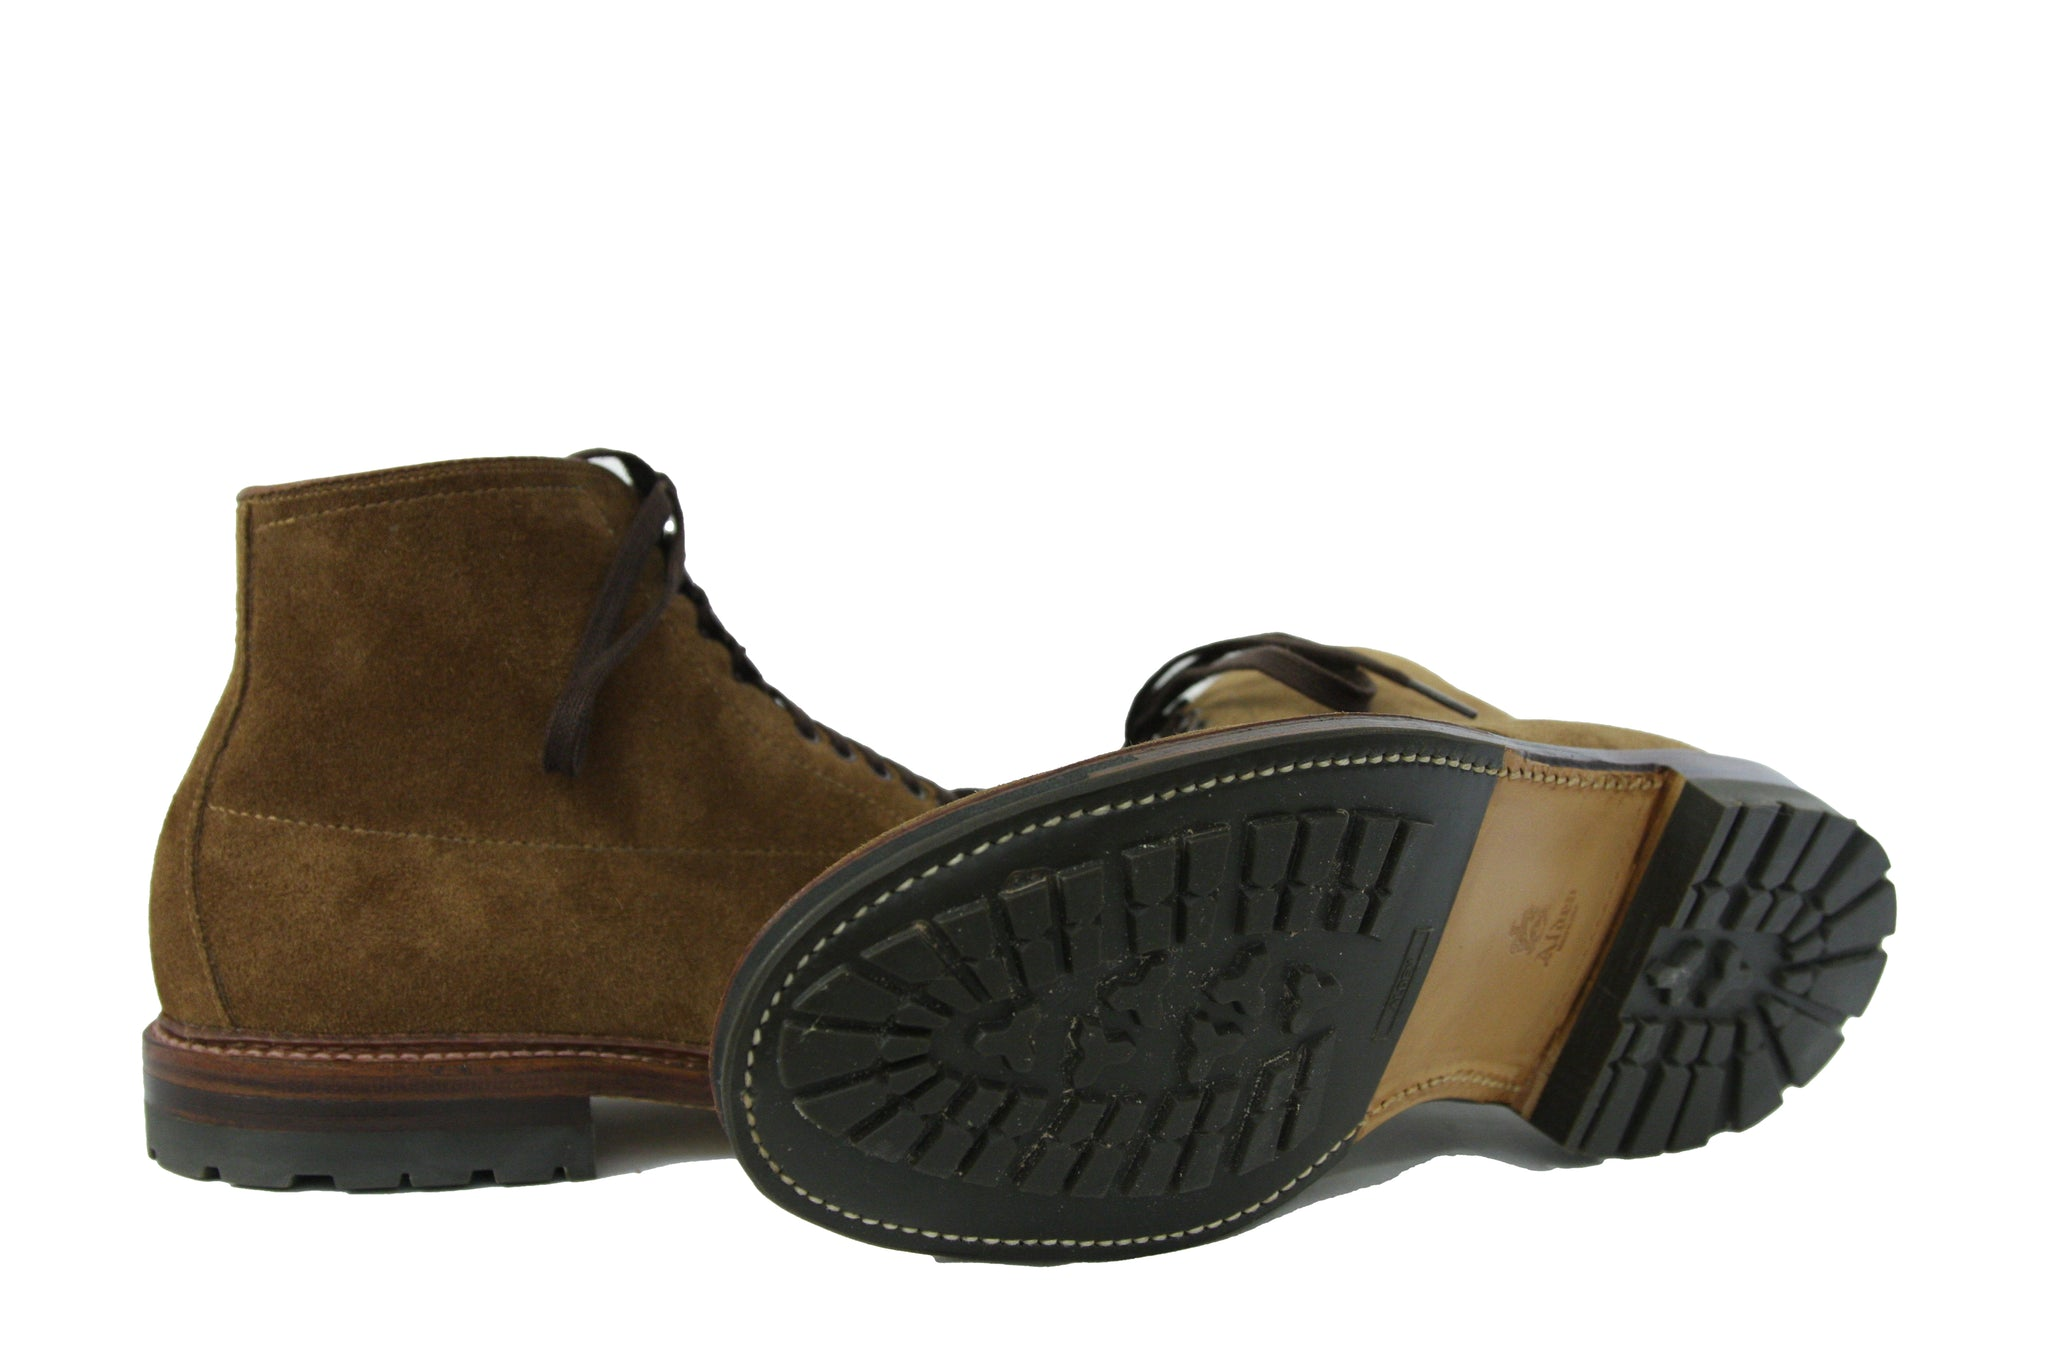 Alden Shoes Indy True Balance Workboot Snuff Suede Commando Sole